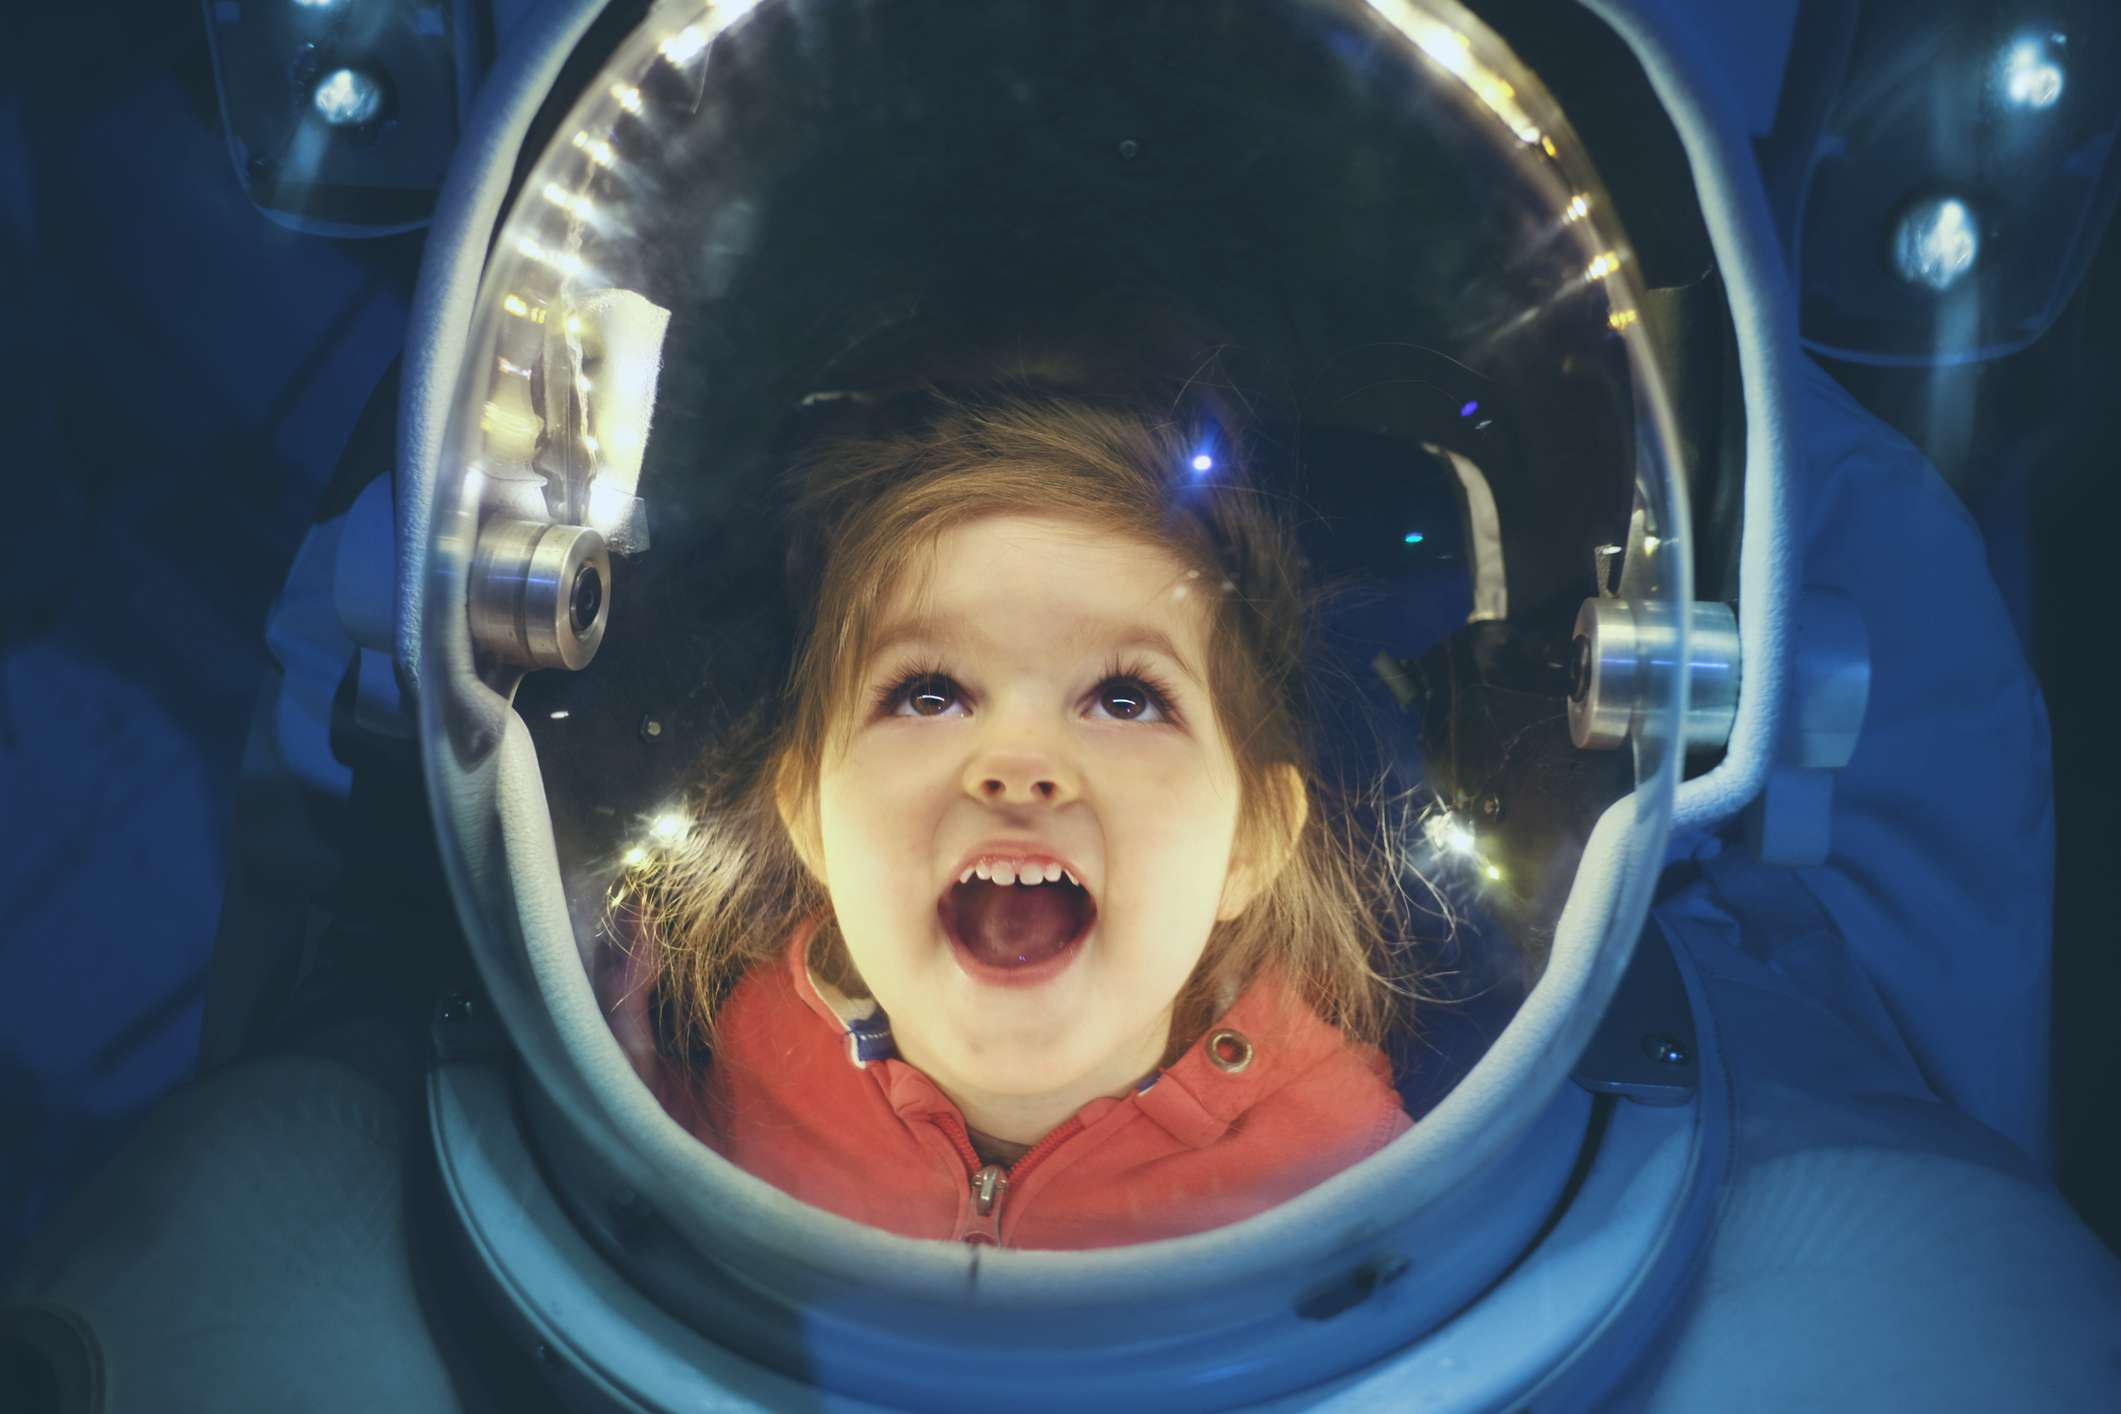 Small girl enjoying being inside of astronaut suit